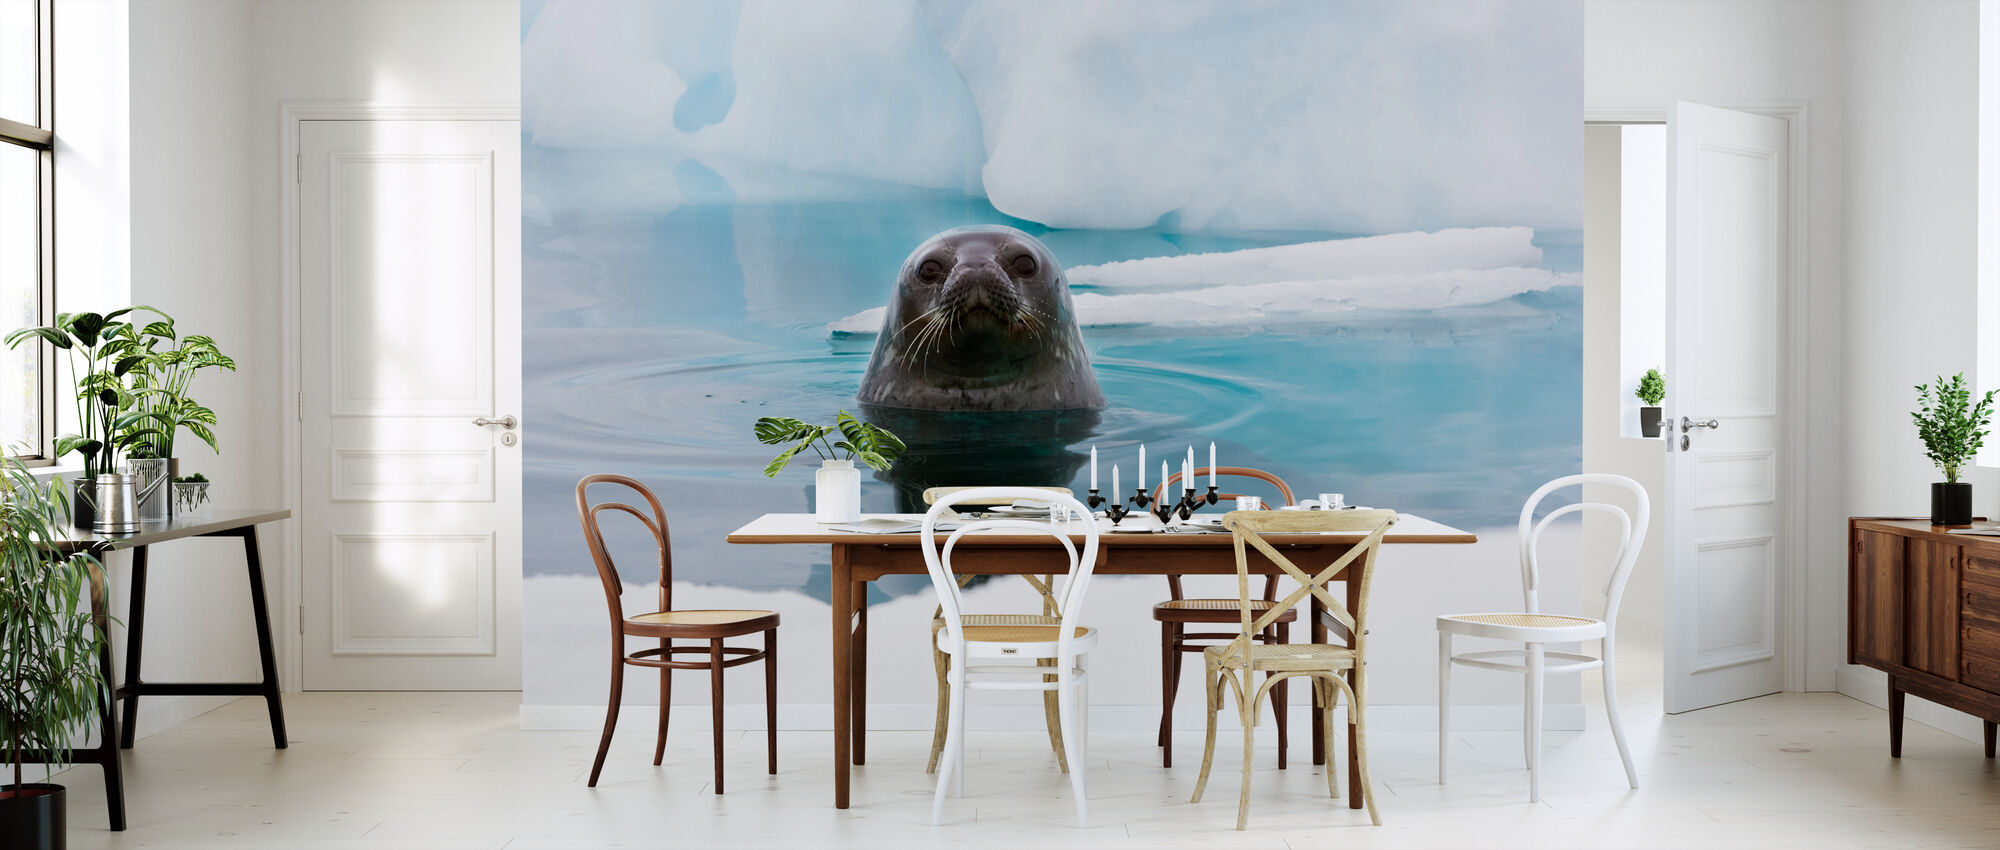 curious seal preiswerte fototapete photowall. Black Bedroom Furniture Sets. Home Design Ideas